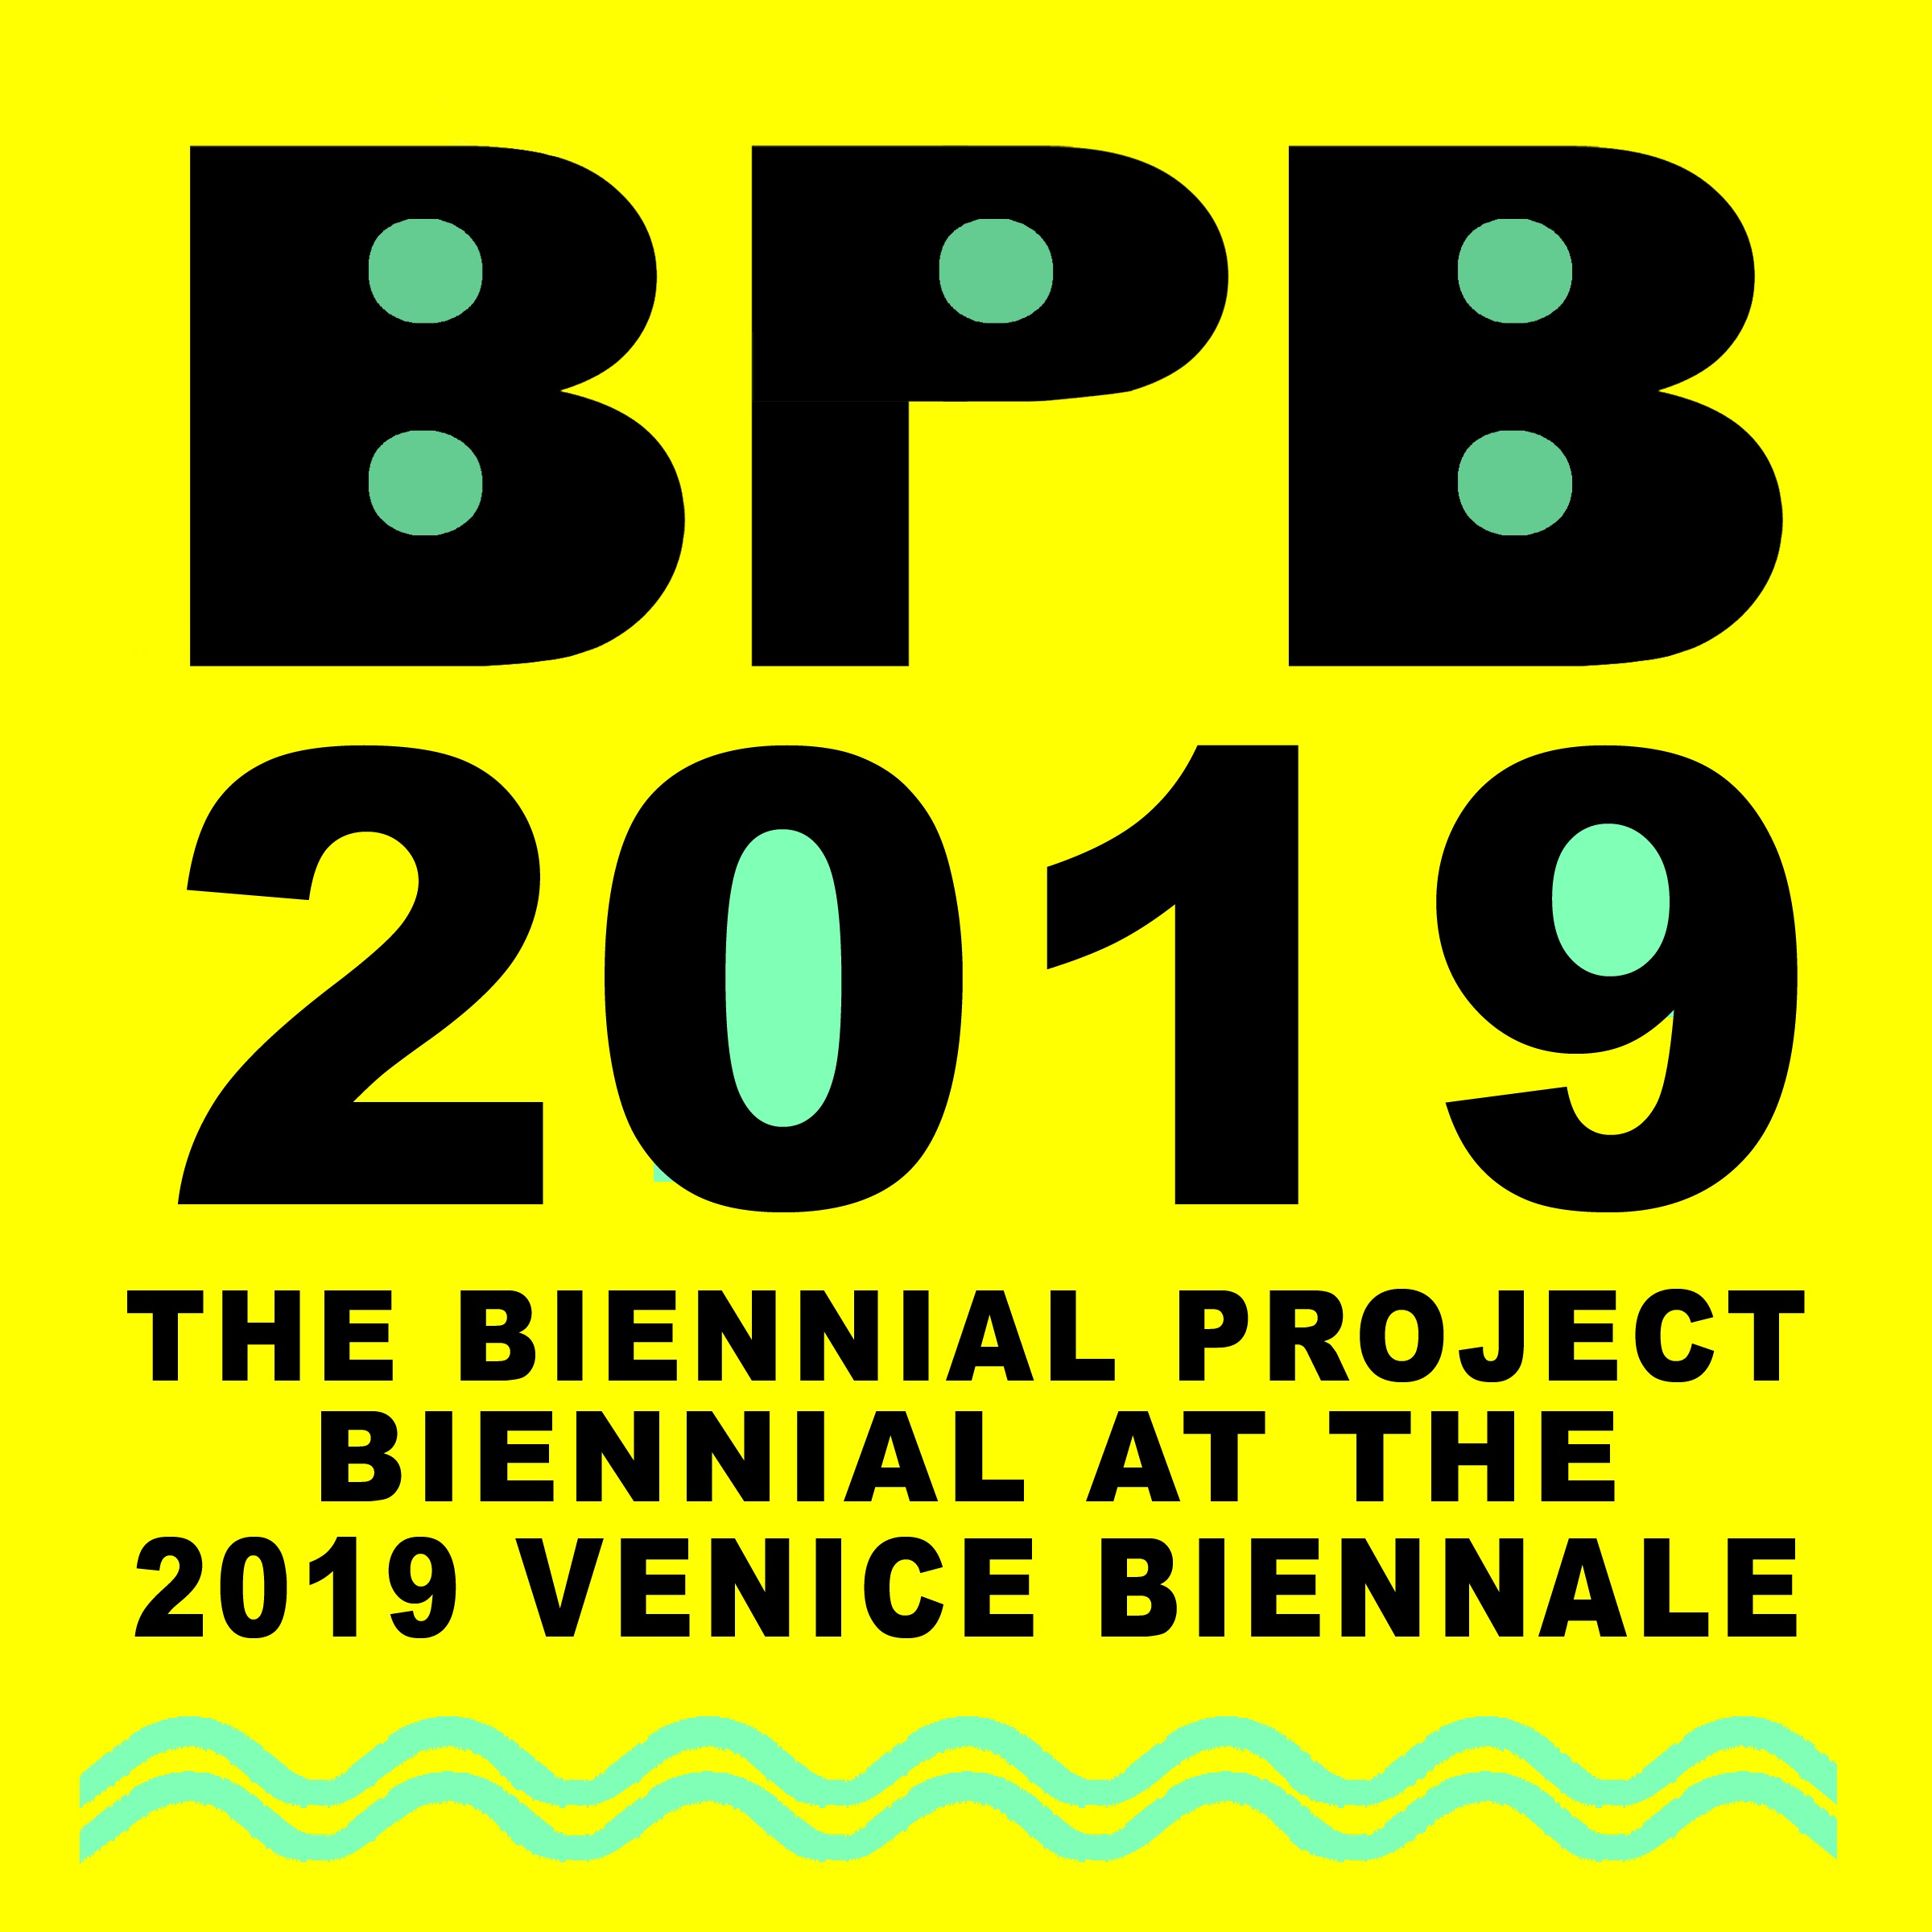 The Biennial Project Biennial 2019  at the Venice Biennale